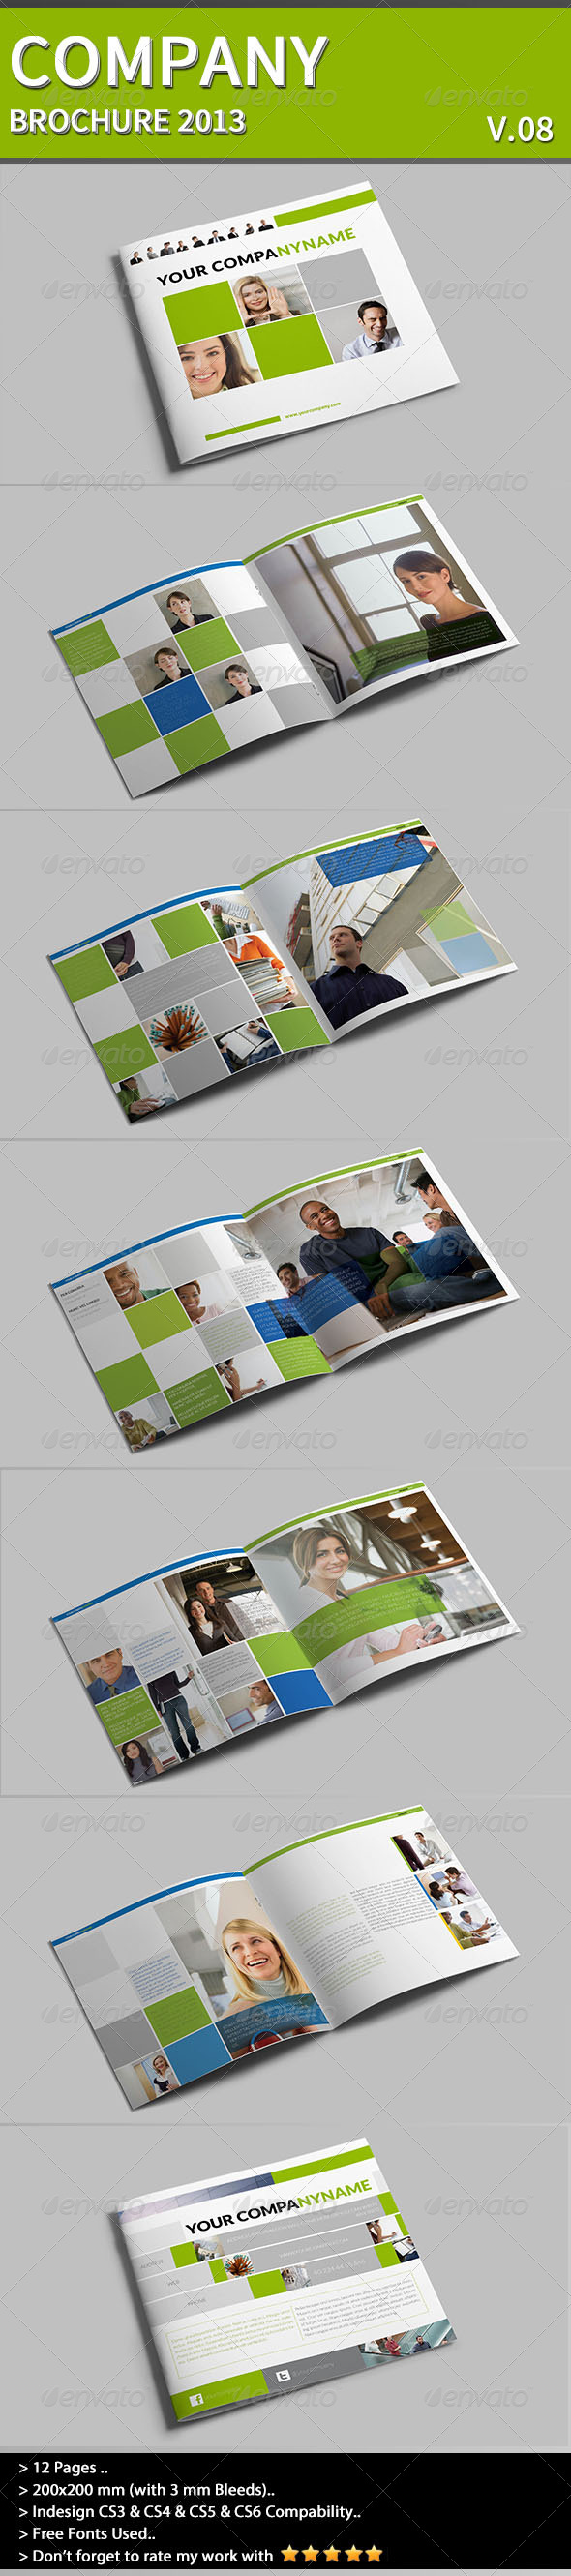 GraphicRiver Company Brochure Part 08 4622284